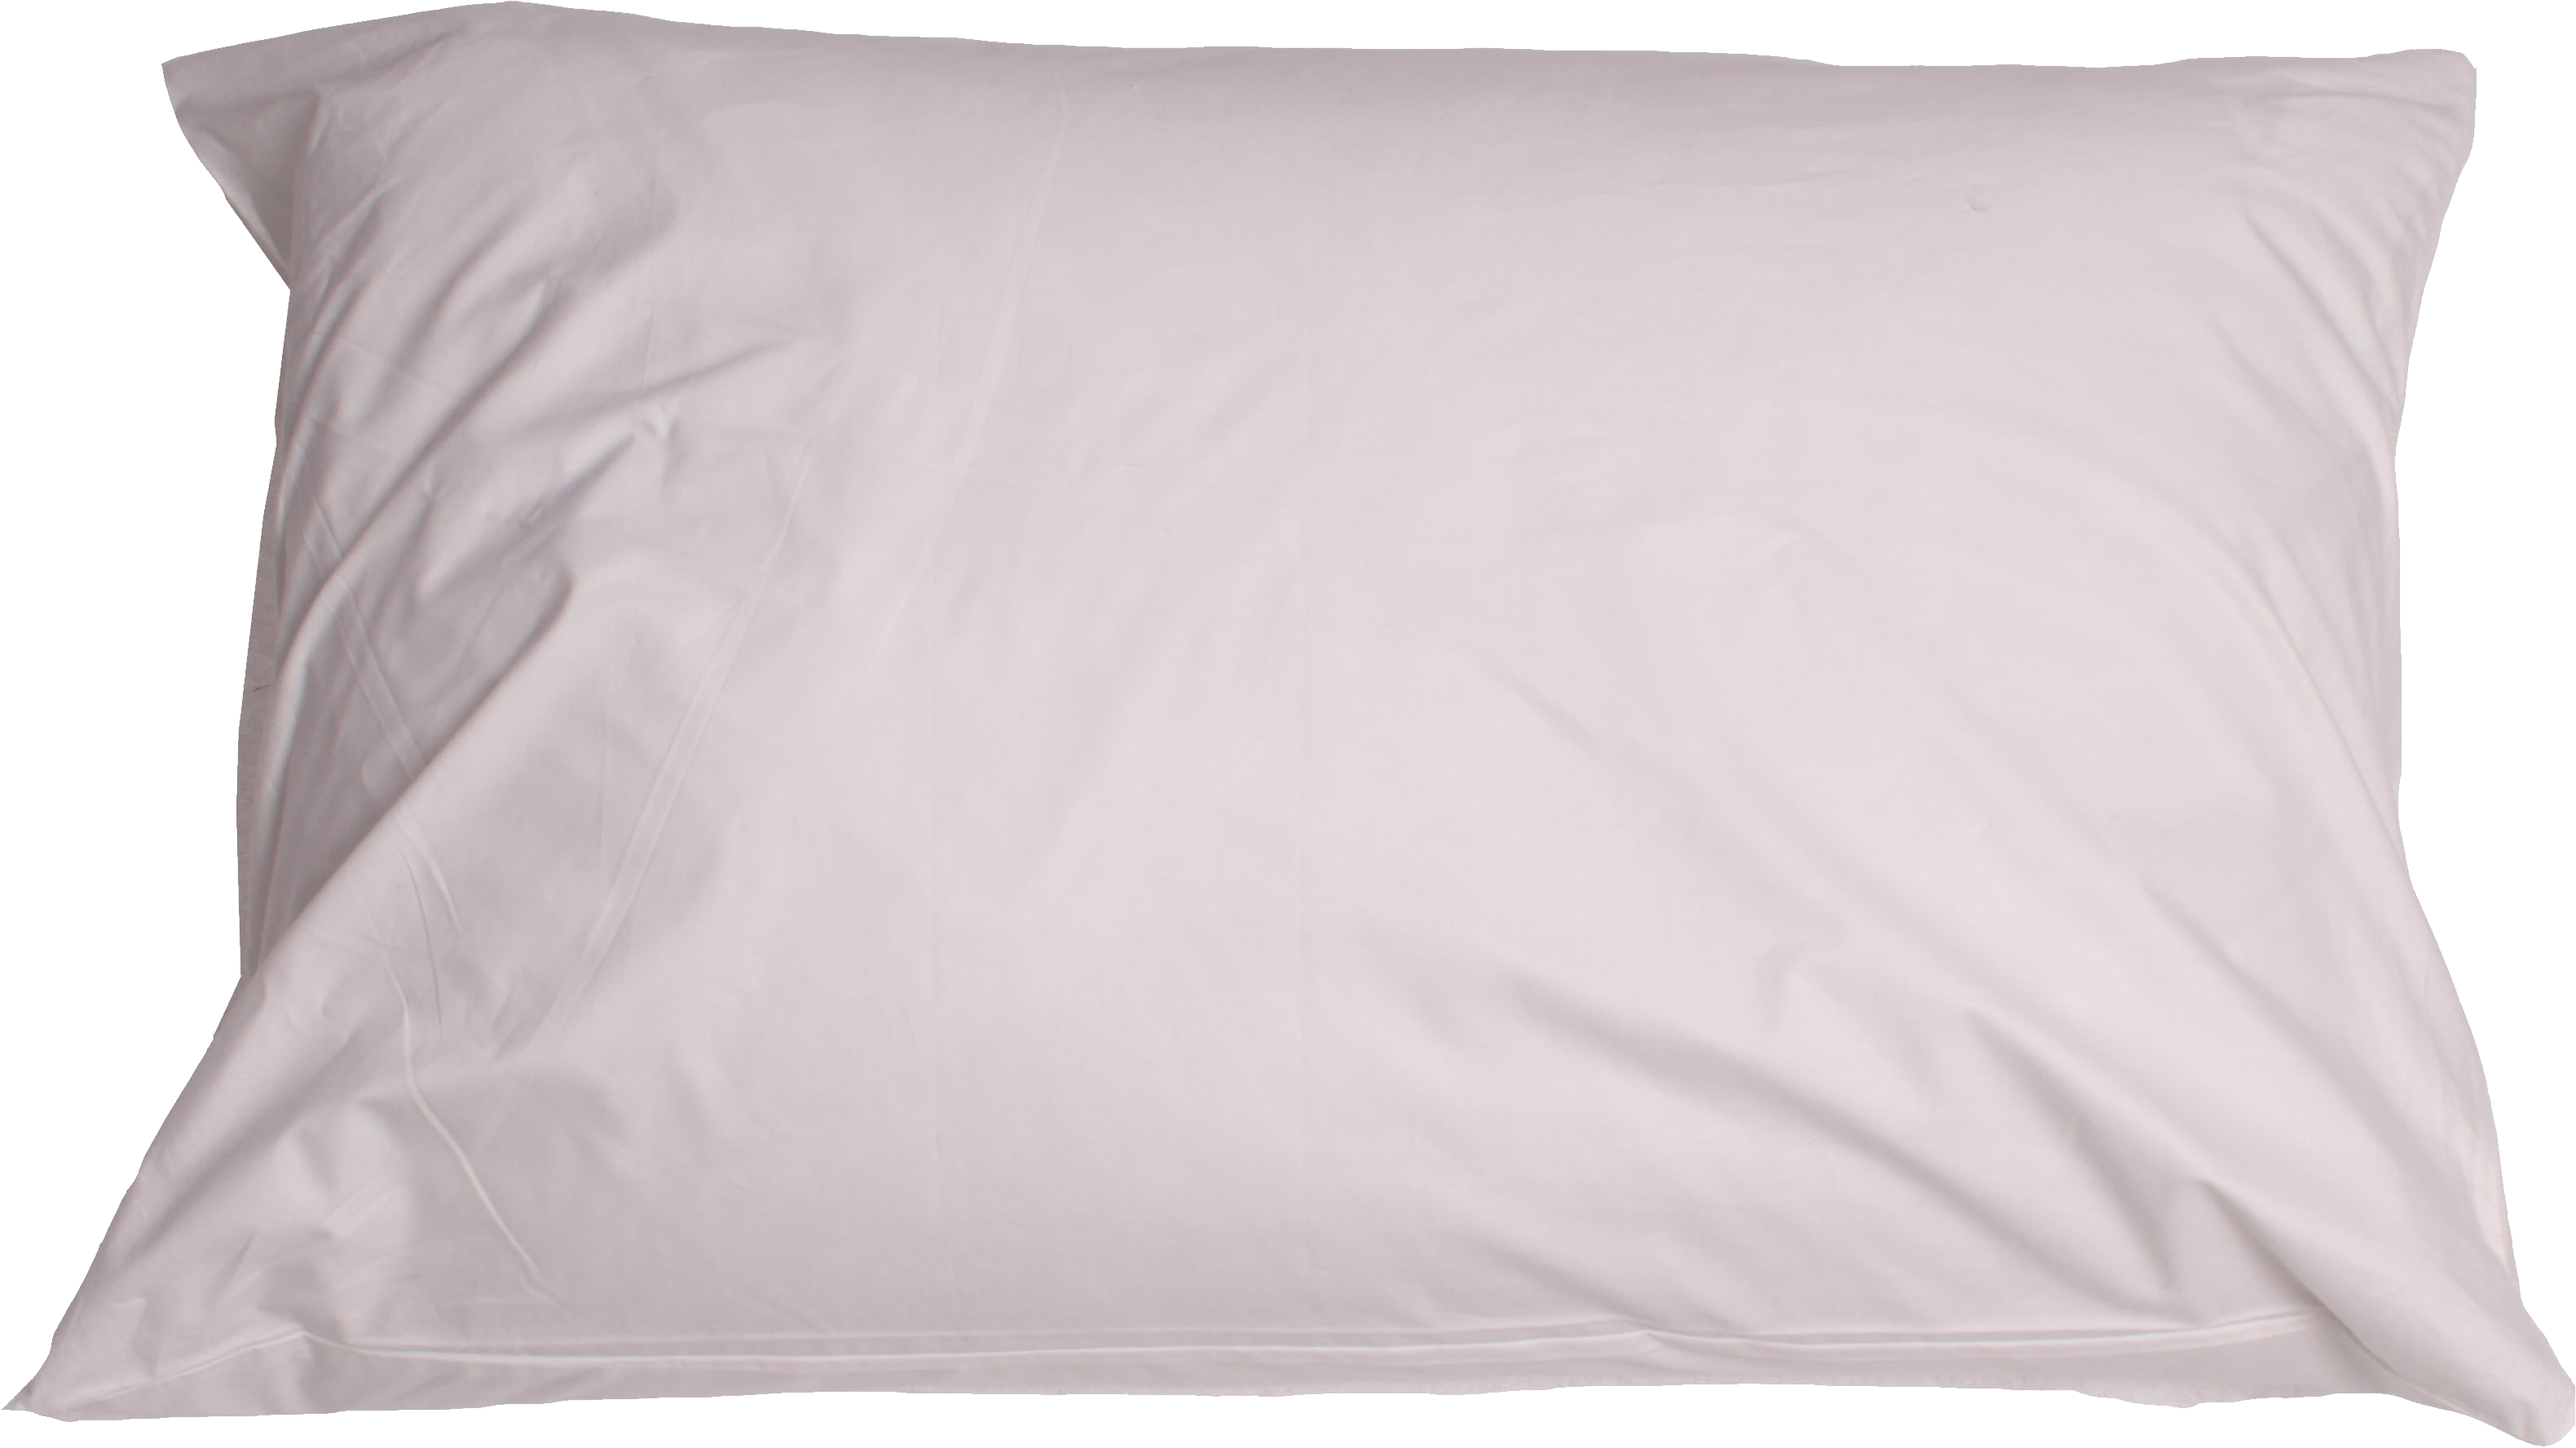 Bed blanket png. Pillows free icons and